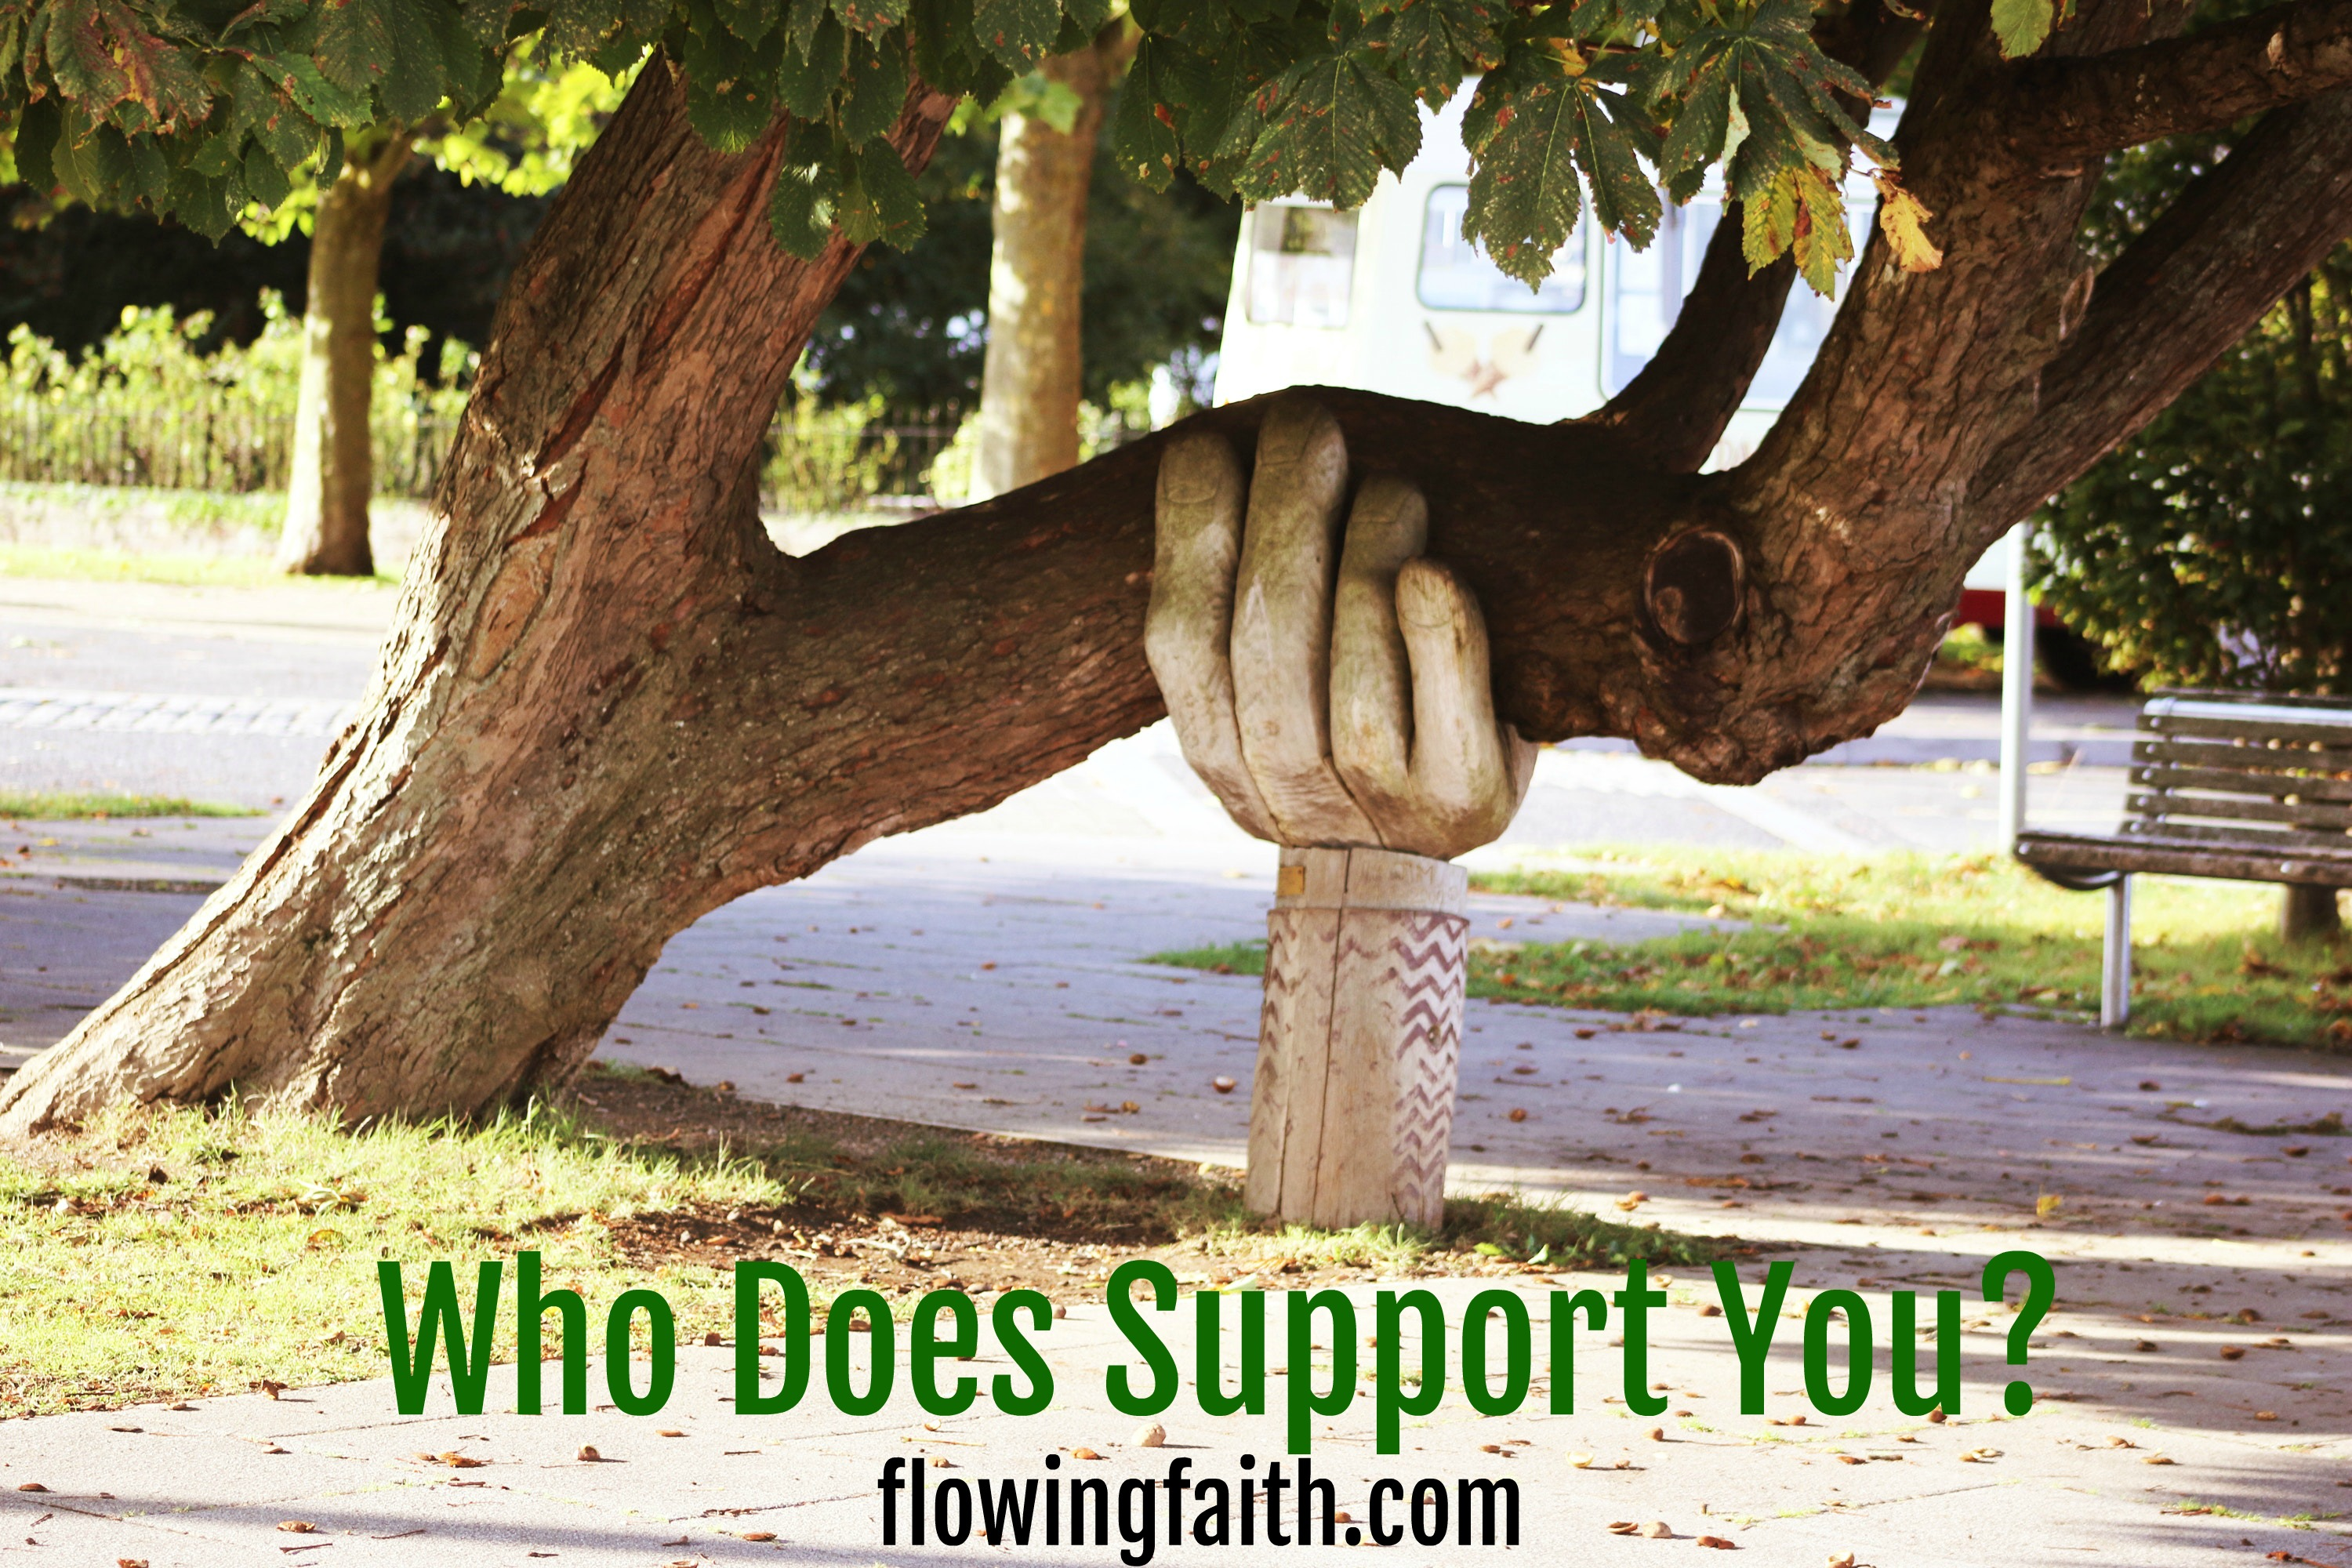 Who does support you?